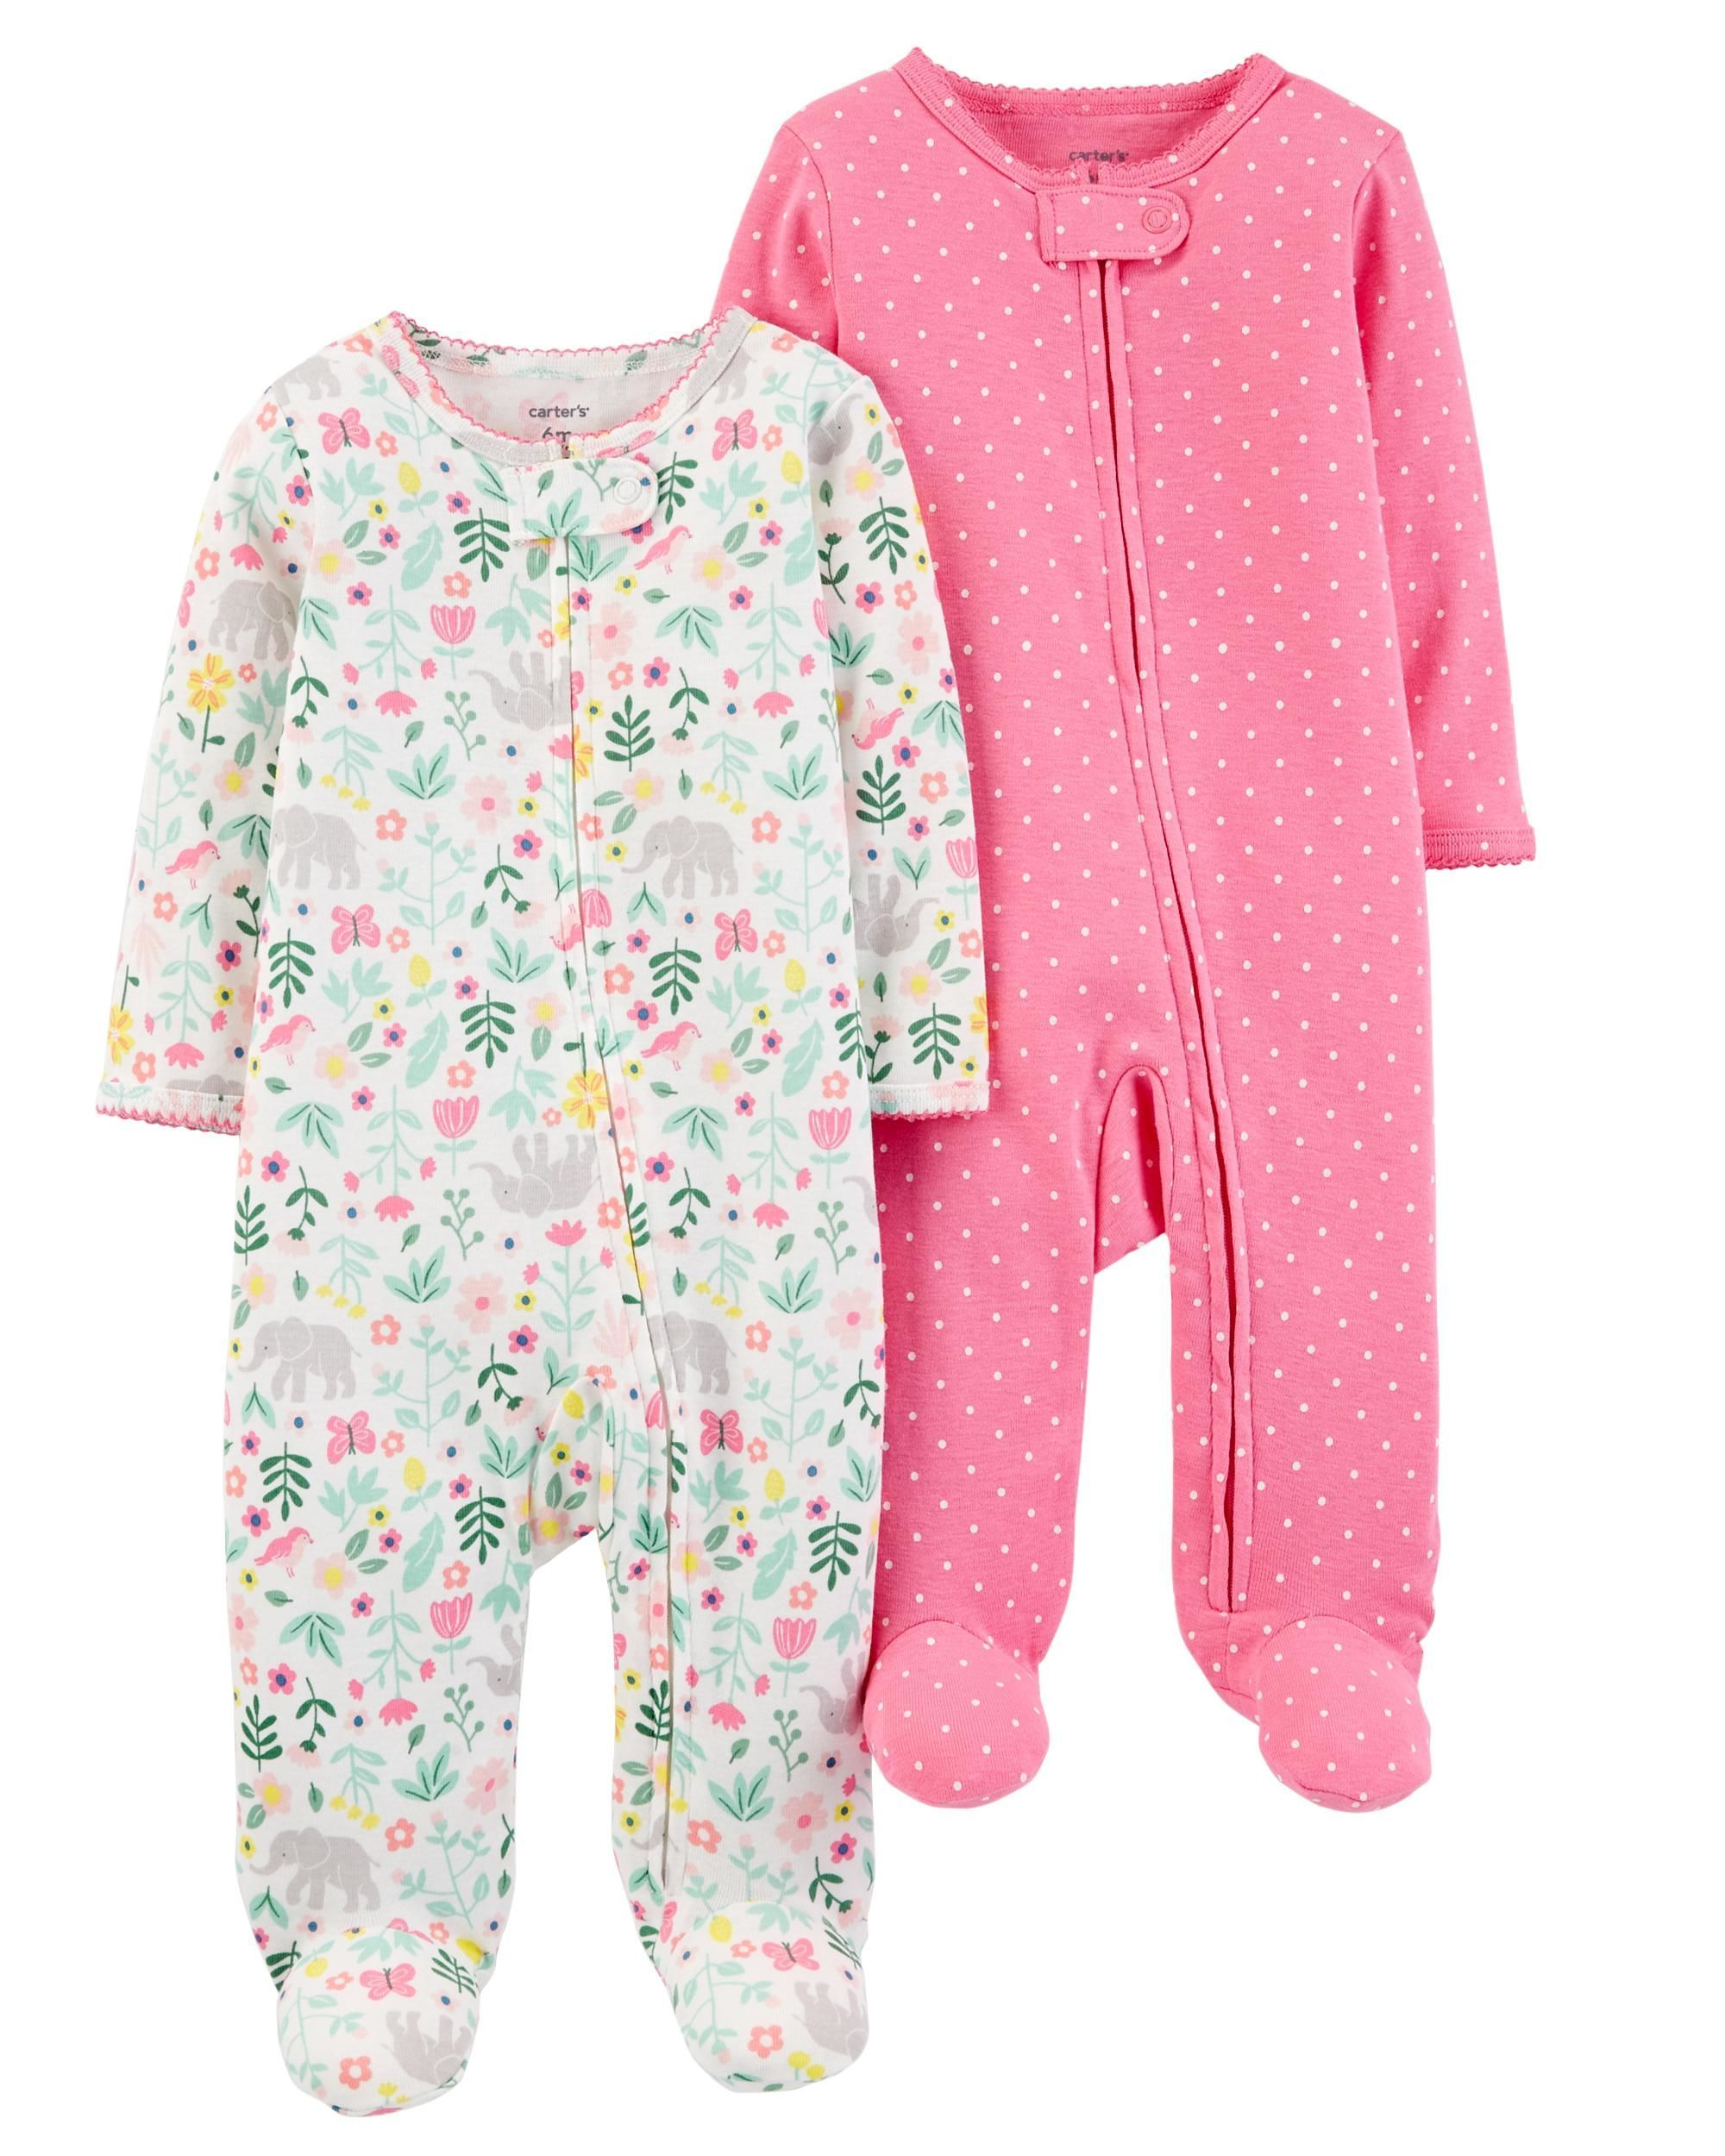 6688a4c98d9ab 2-Pack Zip-Up Cotton Sleep & Play Set | Family, Kids, Babies & Stuff ...